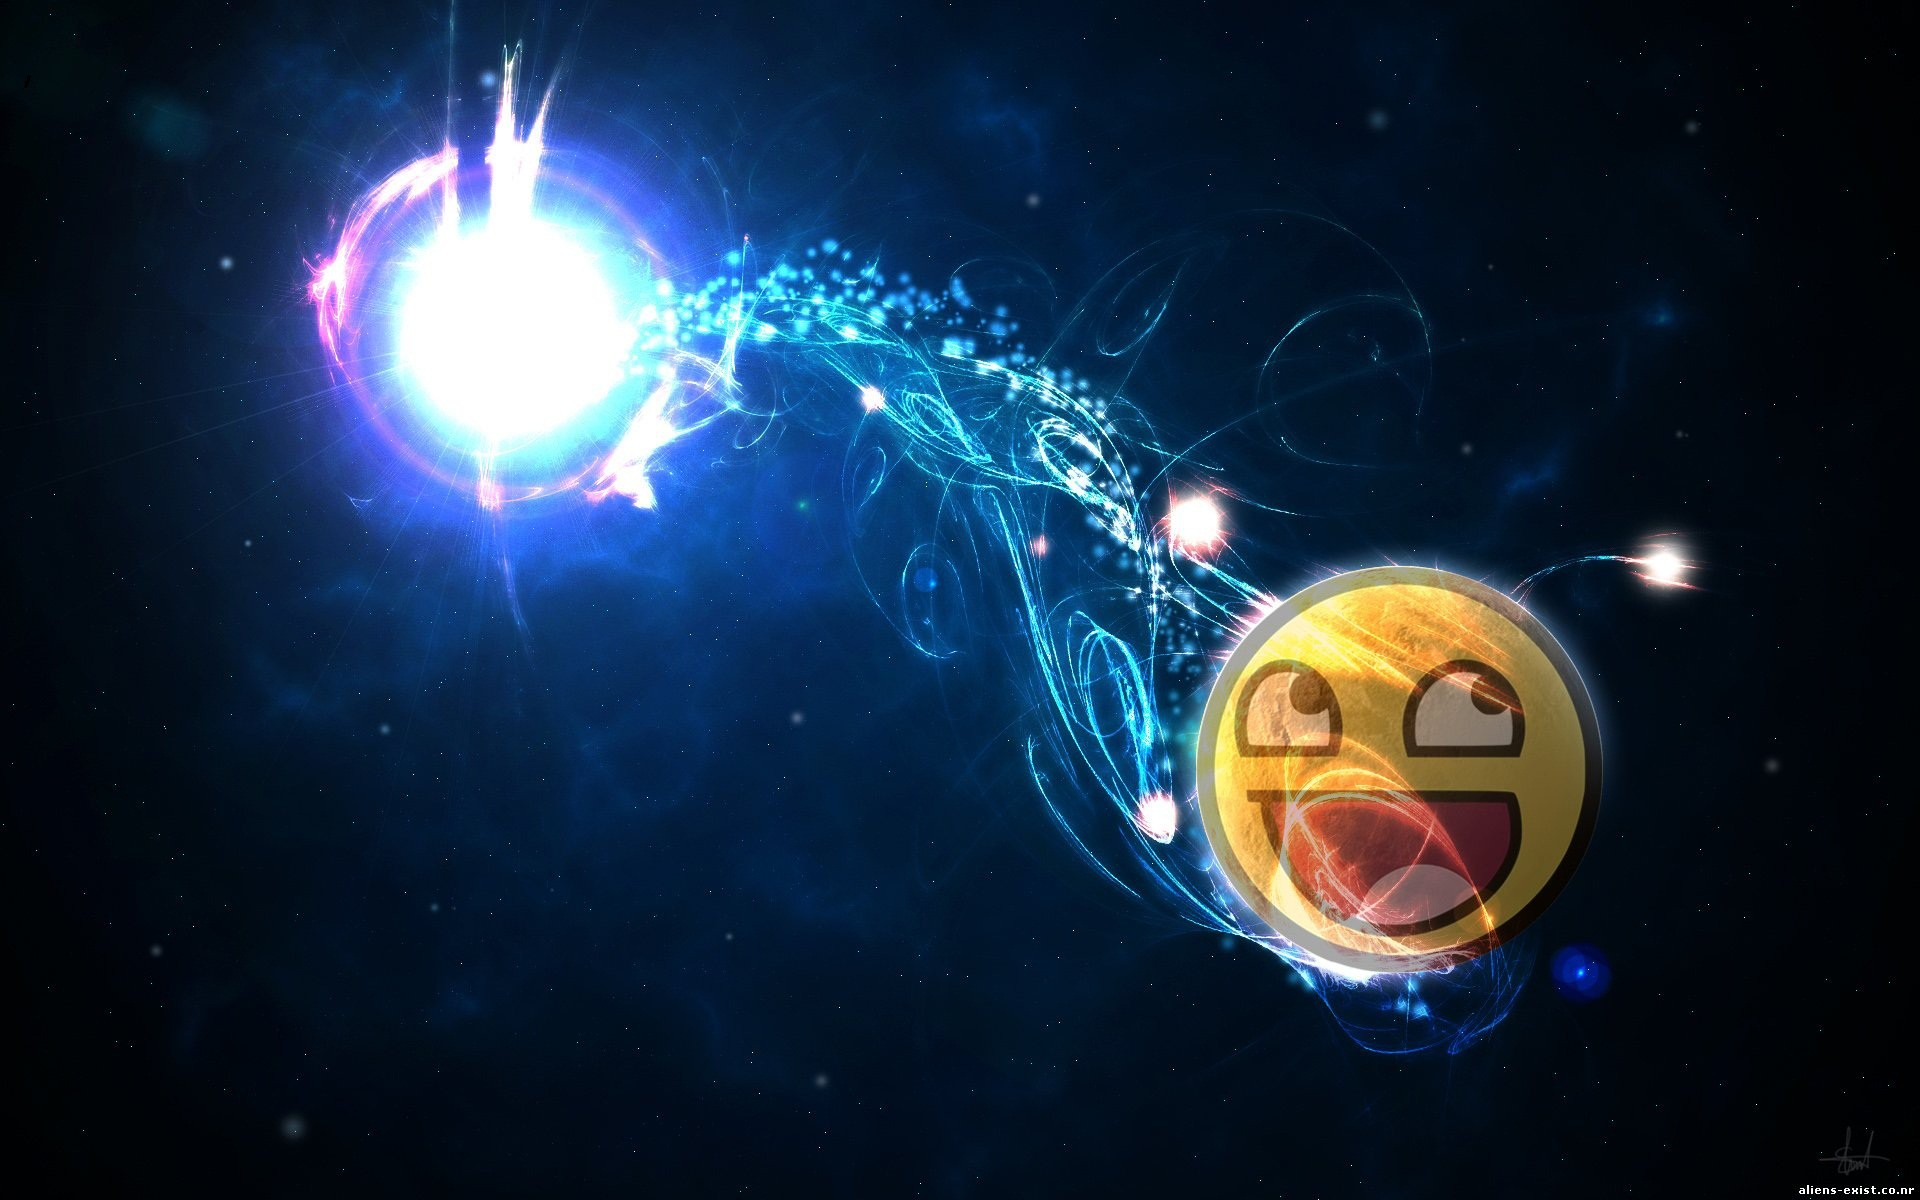 free Awesome Face wallpaper, resolution : 1920 x tags: Awesome, Face.